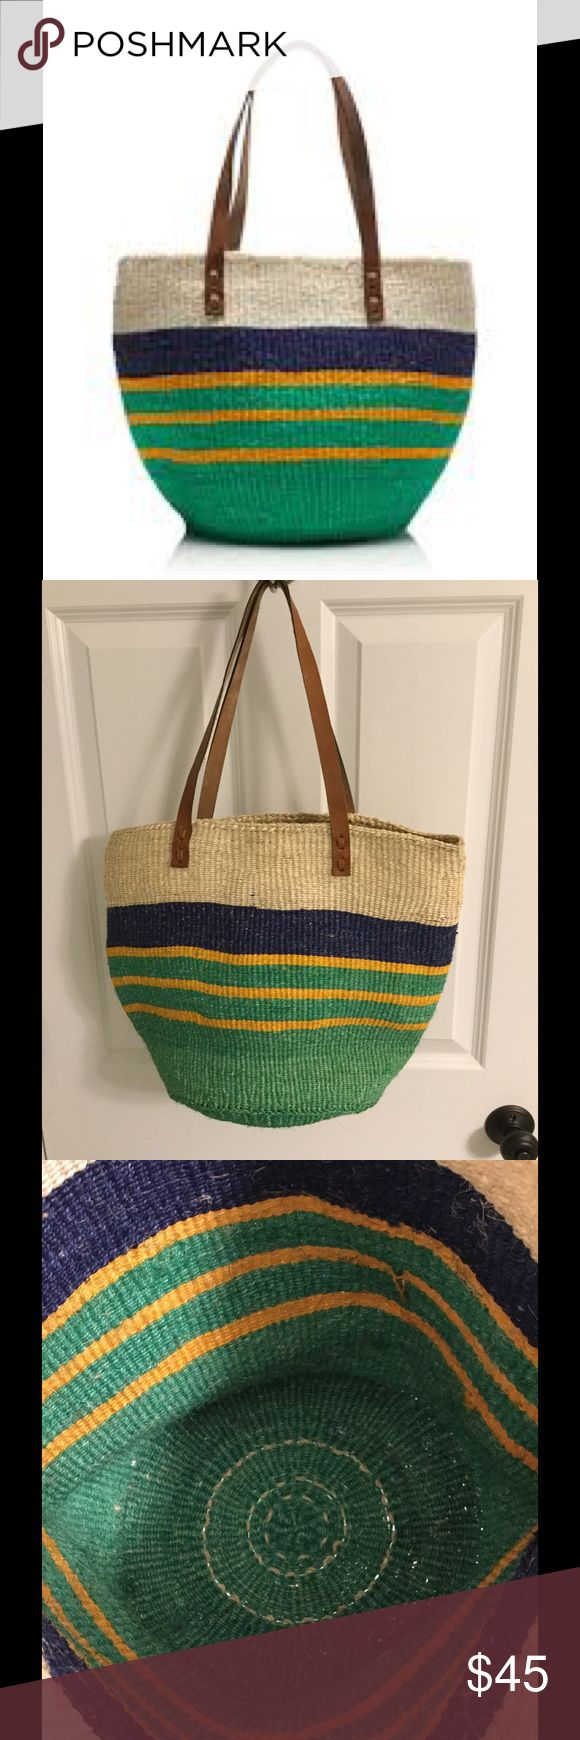 "J. Crew Bamboula Ltd. tote beach bag Fabulous sisal tote by Bamboula Ltd. for J. Crew.  I purchased this directly from their web site - it is from the In Good Company section - there are no J. Crew tags or labels on it.  These bags are handmade in Africa, so there are minor imperfections.  The slight wear to the interior leather strap and the small black marks were there when I purchased the bag.  Only used for 1 week on vacation.  Approx measurements: 9"" handle drop, 12"" high, 16"" wide and…"